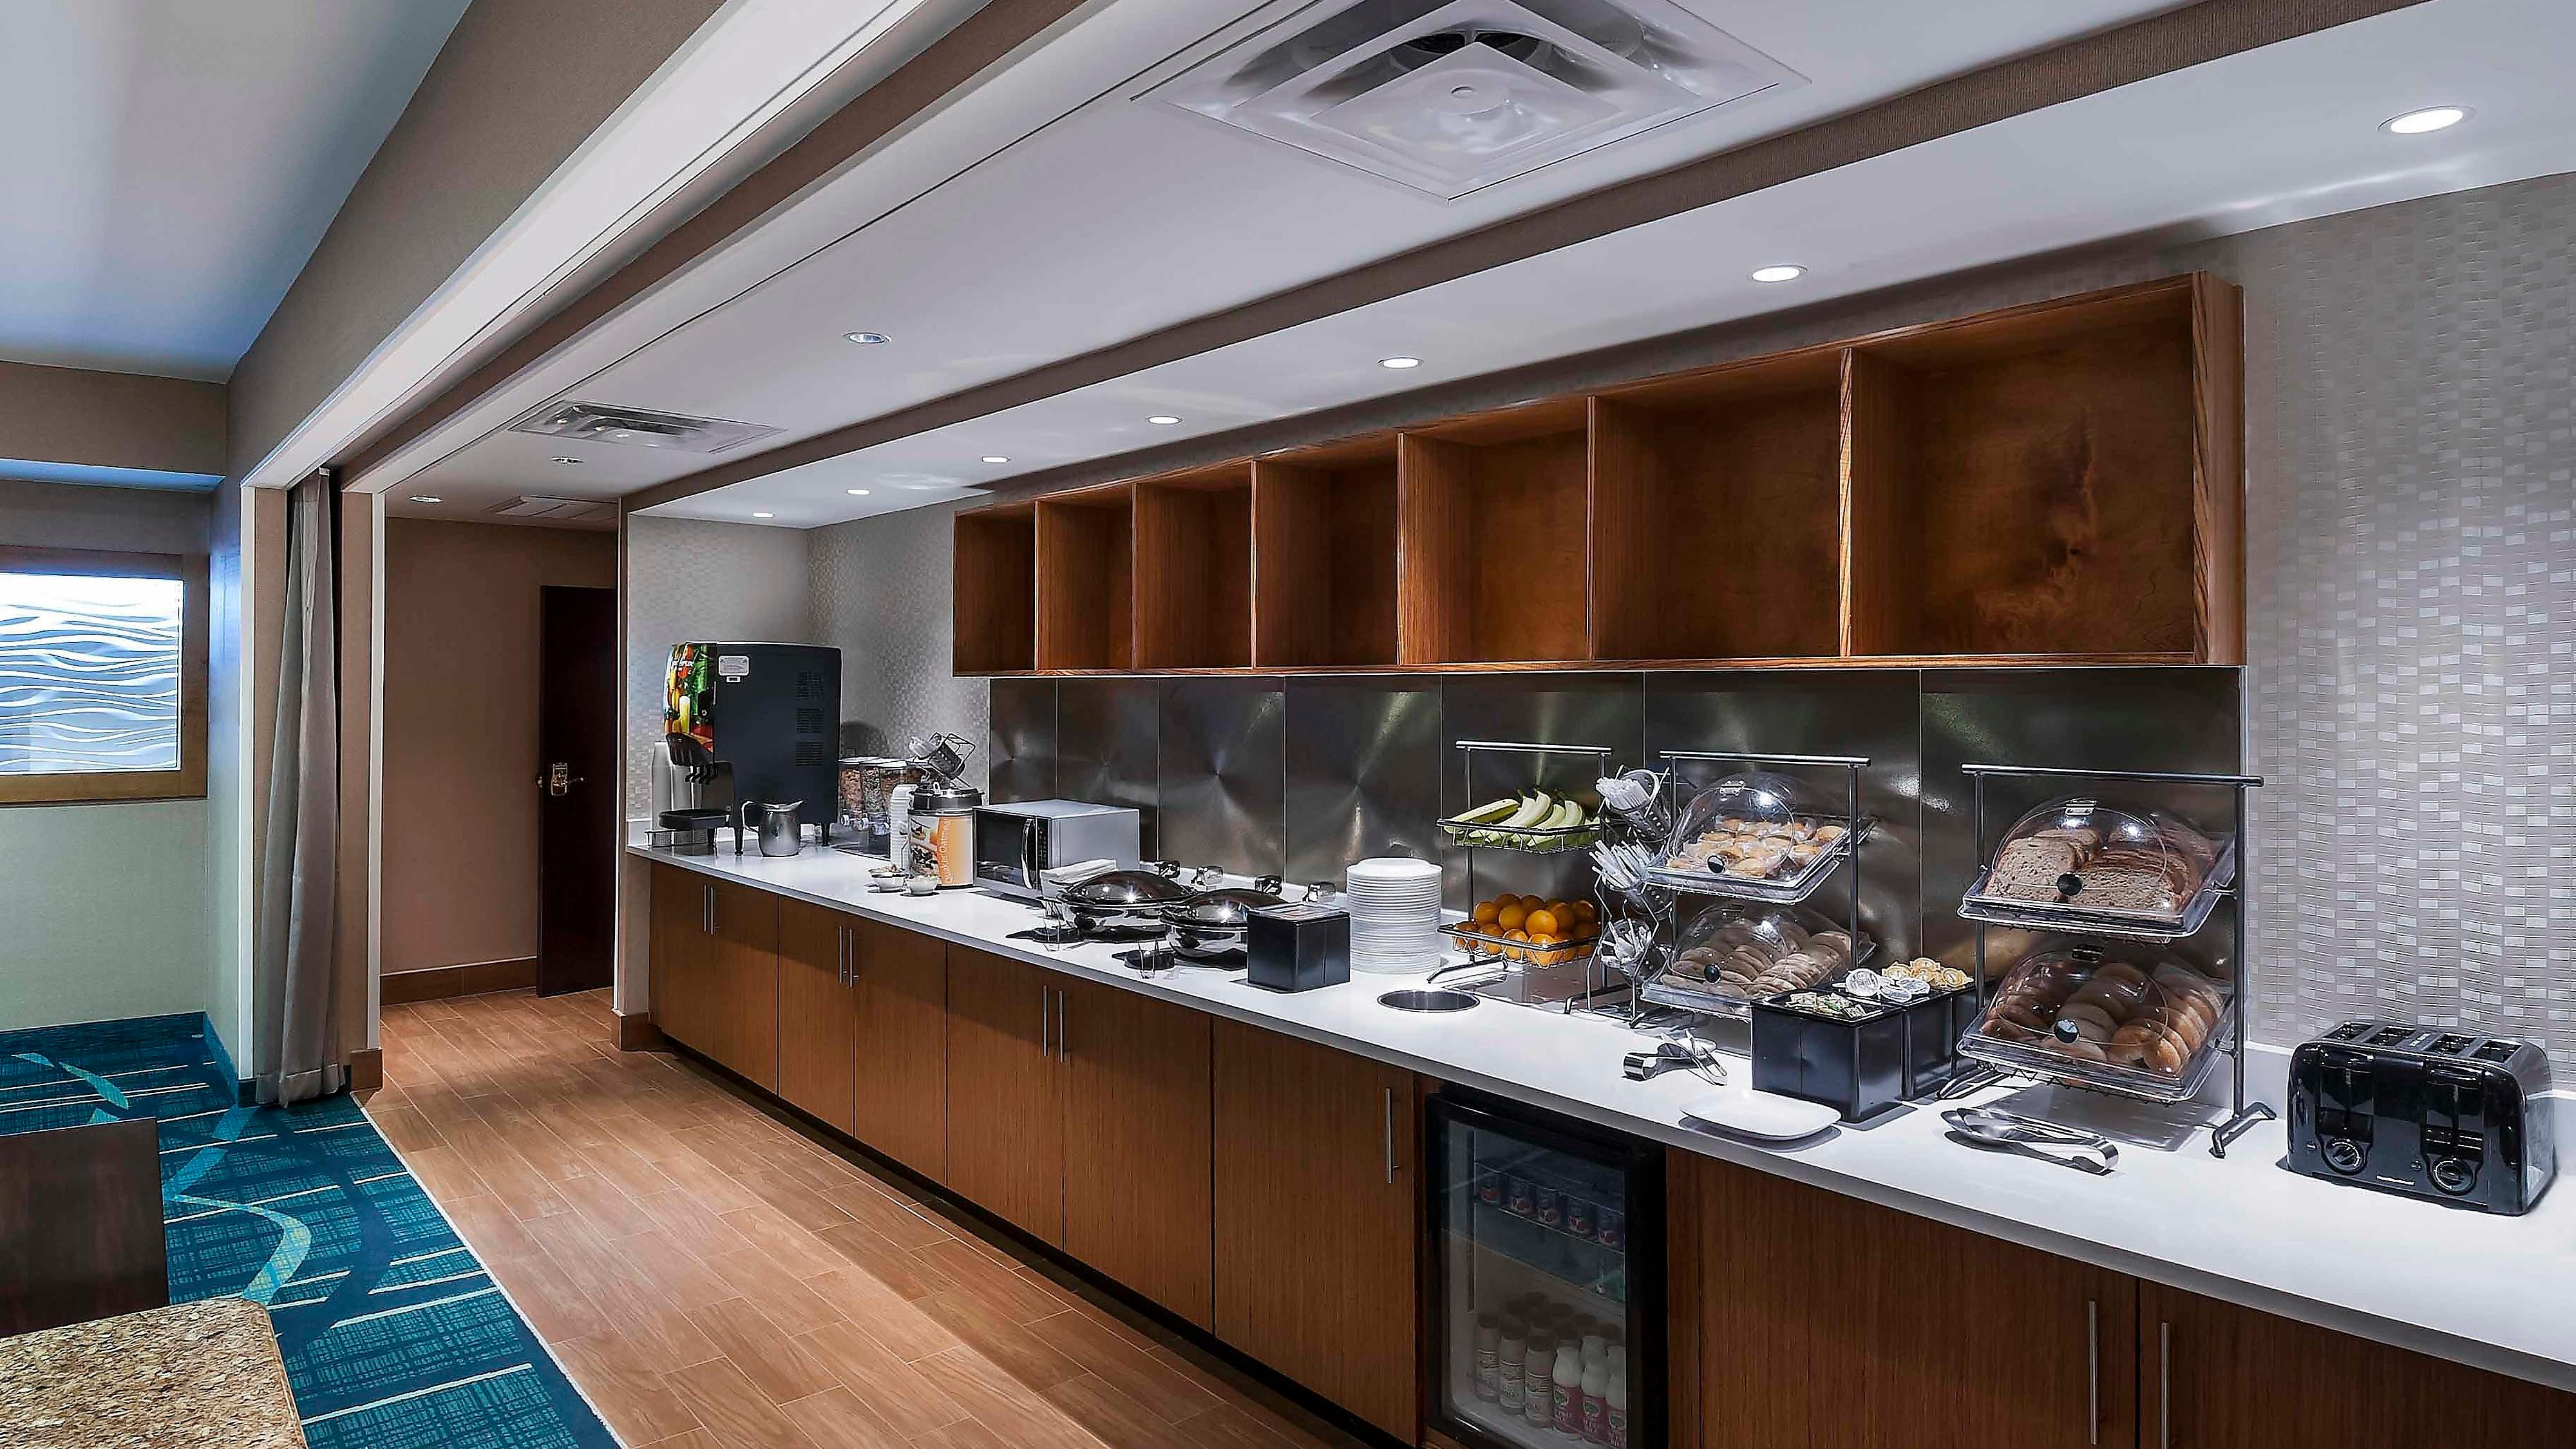 SpringHill Suites by Marriott Baton Rouge South image 11